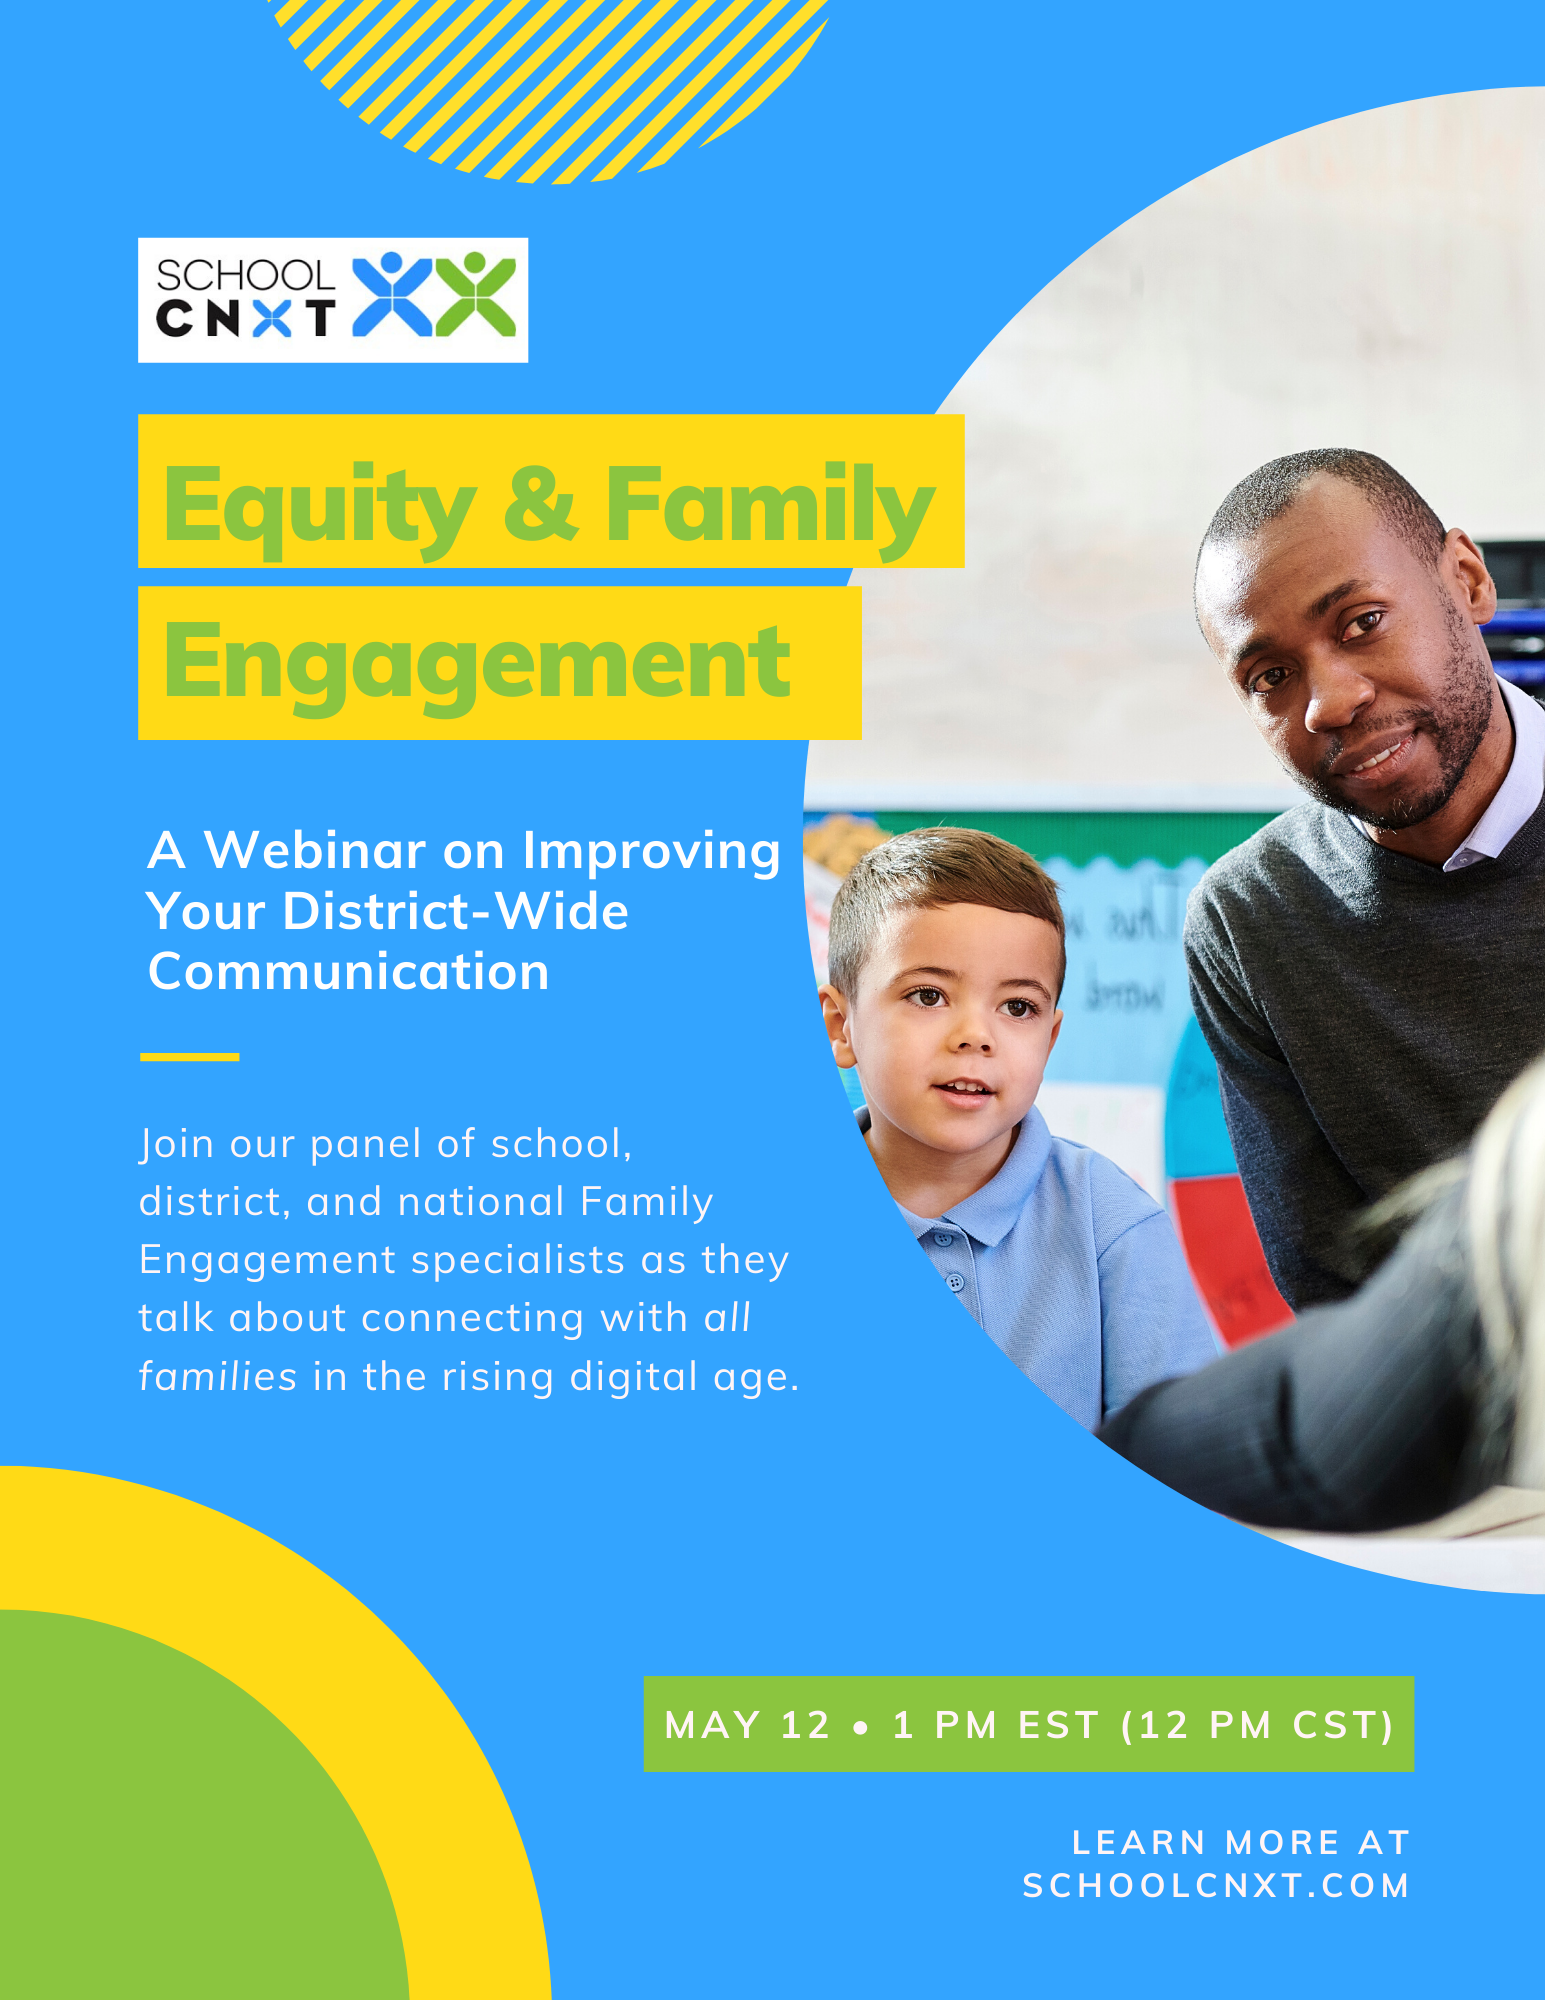 a webinar on improving your district-wide communication, join our panel of school, district and national family engagement specialists as they talk about connecting with all families in the rising digital age